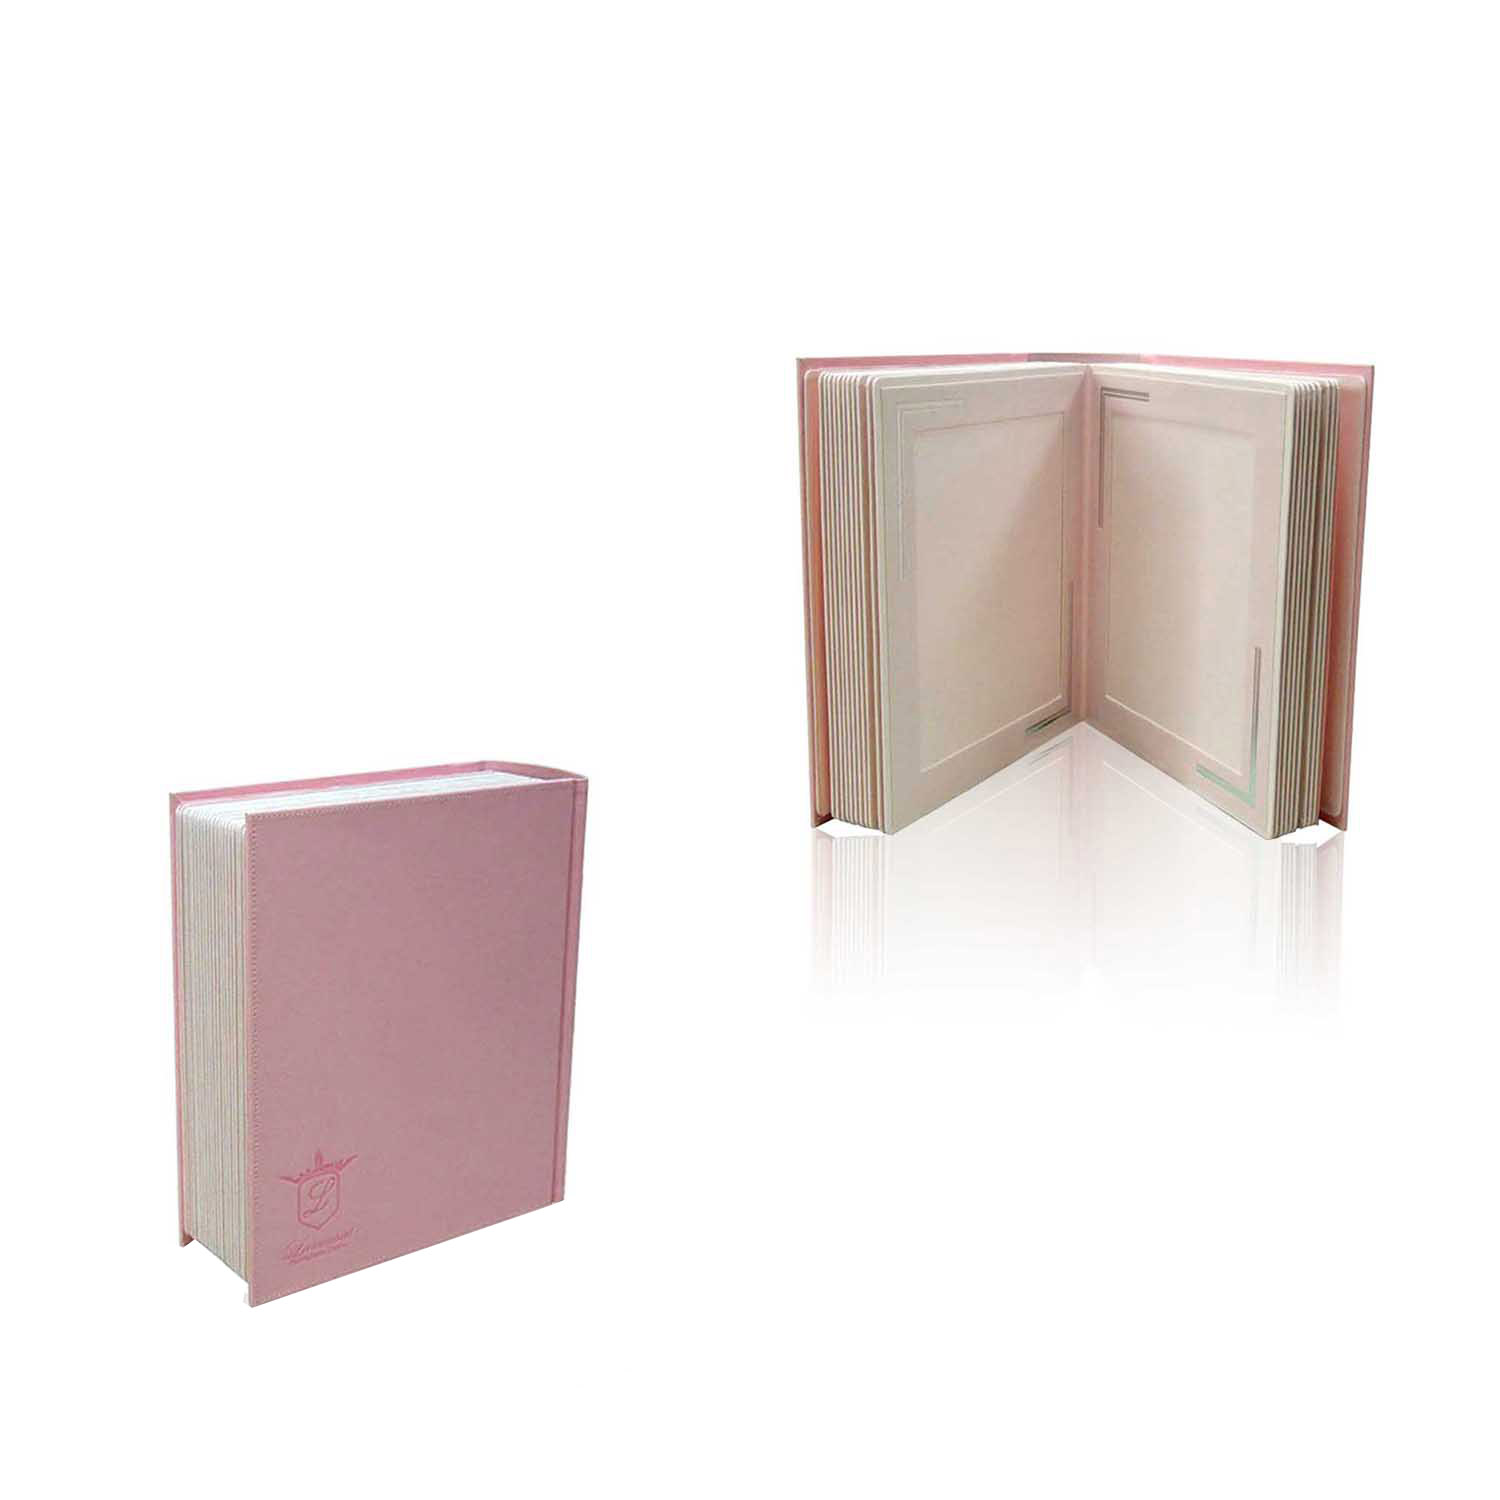 12x18 photo album with leather cover